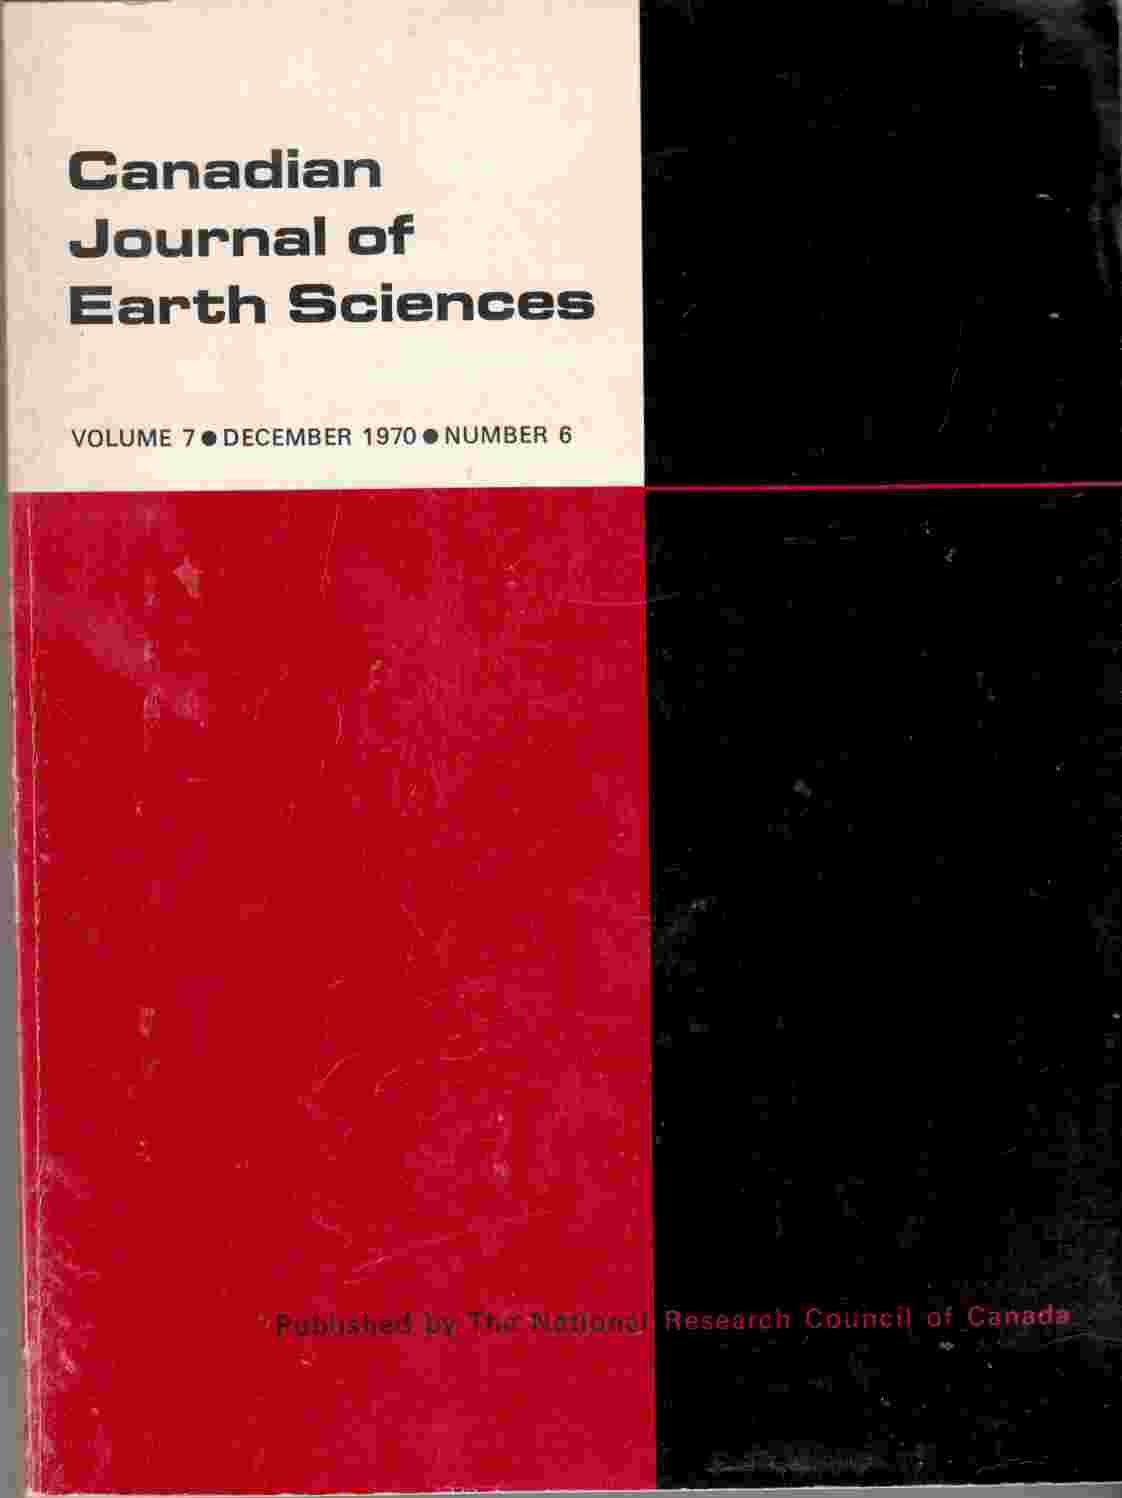 Image for Canadian Journal of Earth Sciences, December 1970, Volume 7, Number 6